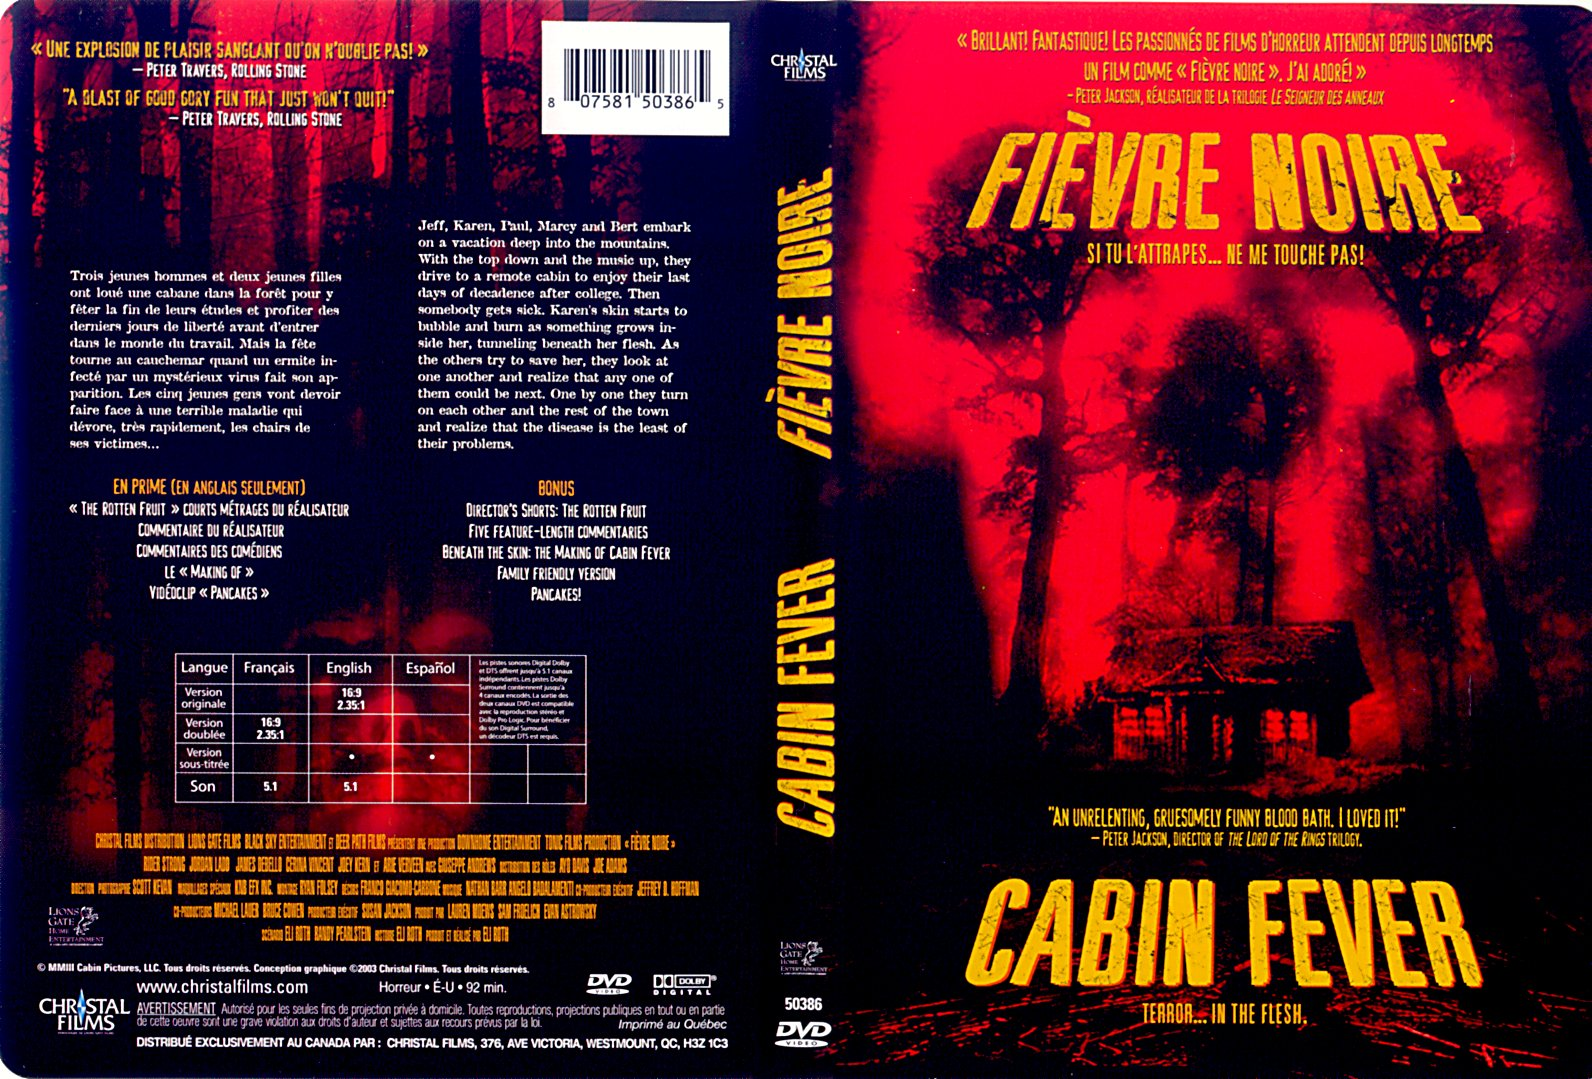 cabin fever images - photo #6